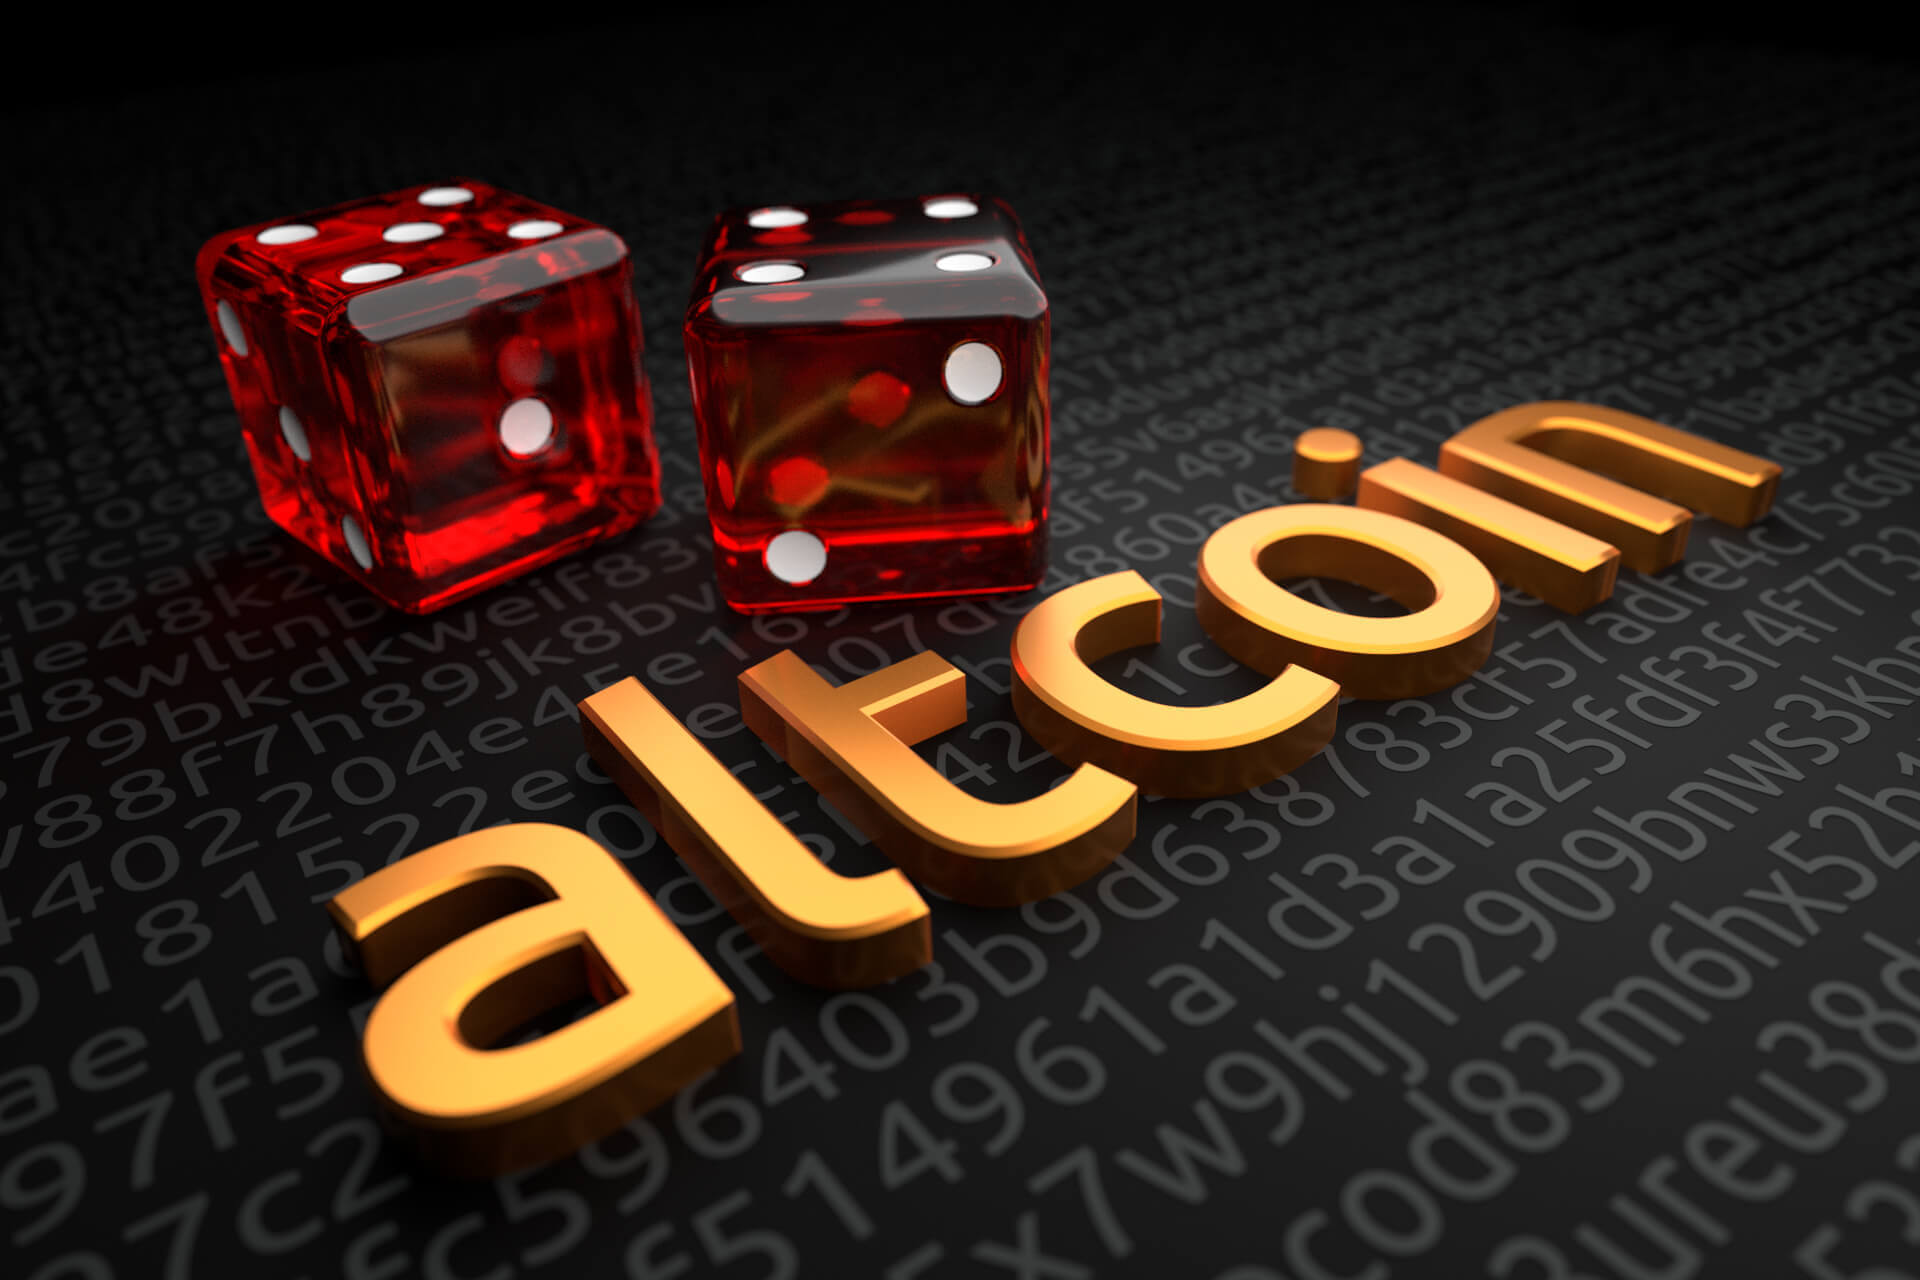 How to create your own Altcoin?